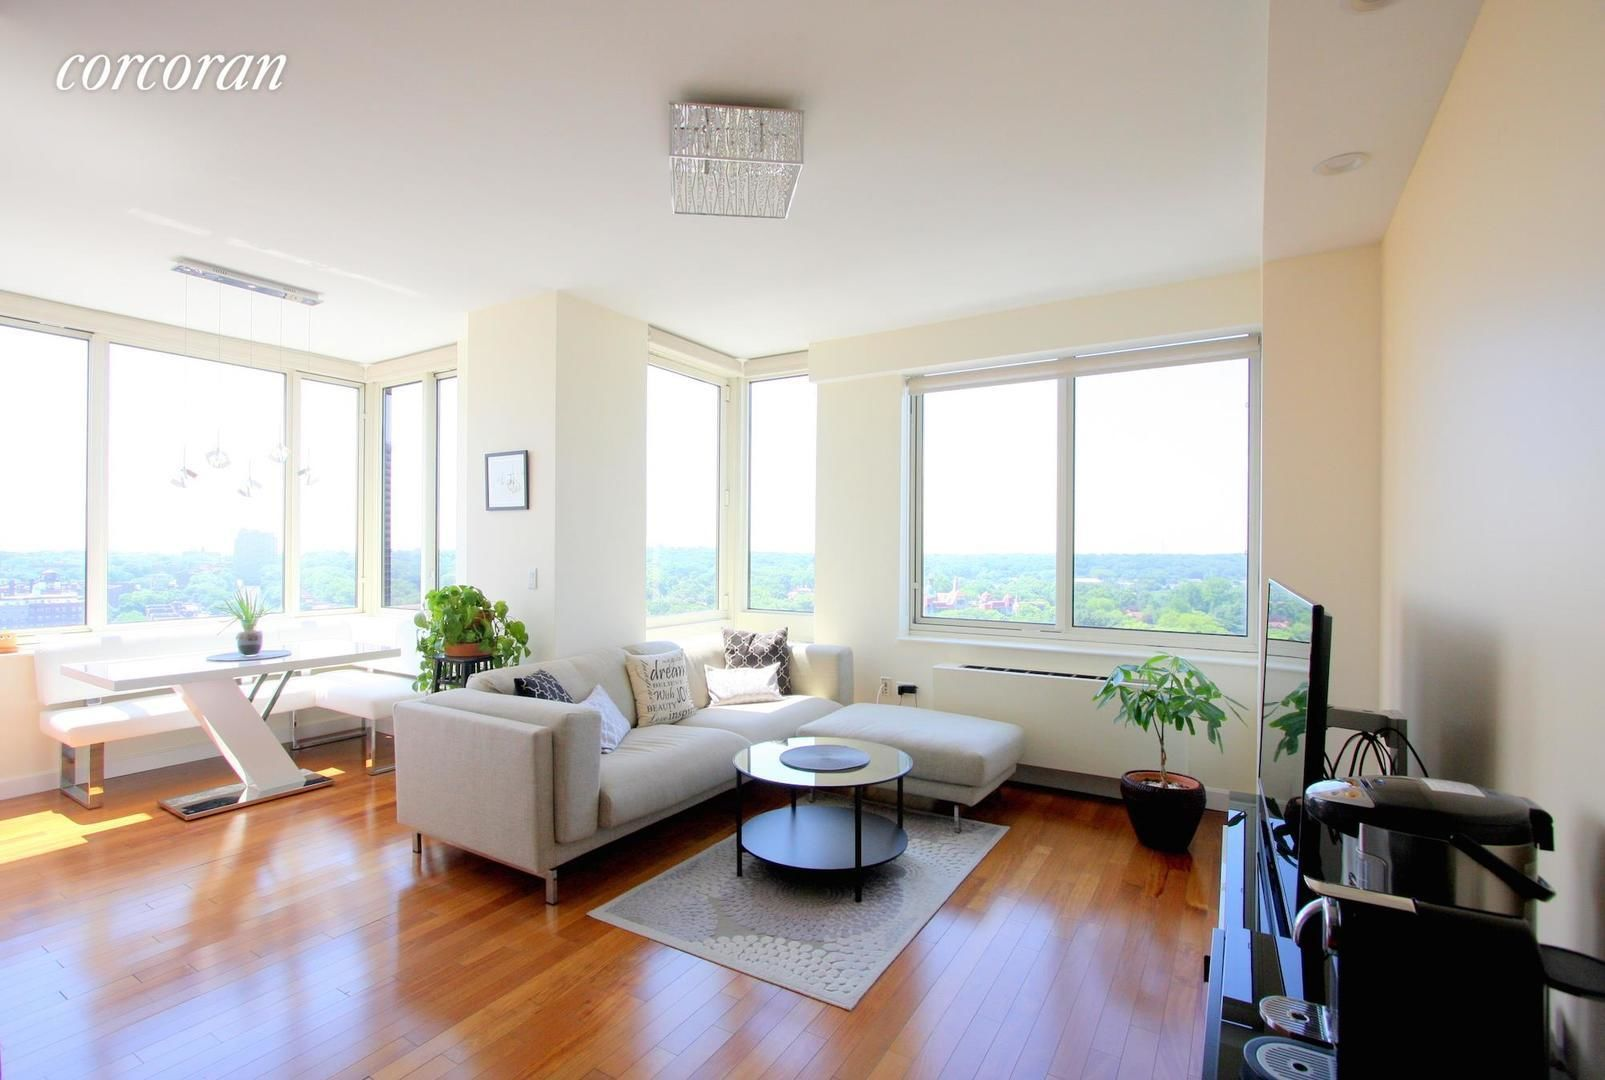 Apartment for sale at 107-24 71st Road, Apt PH1A